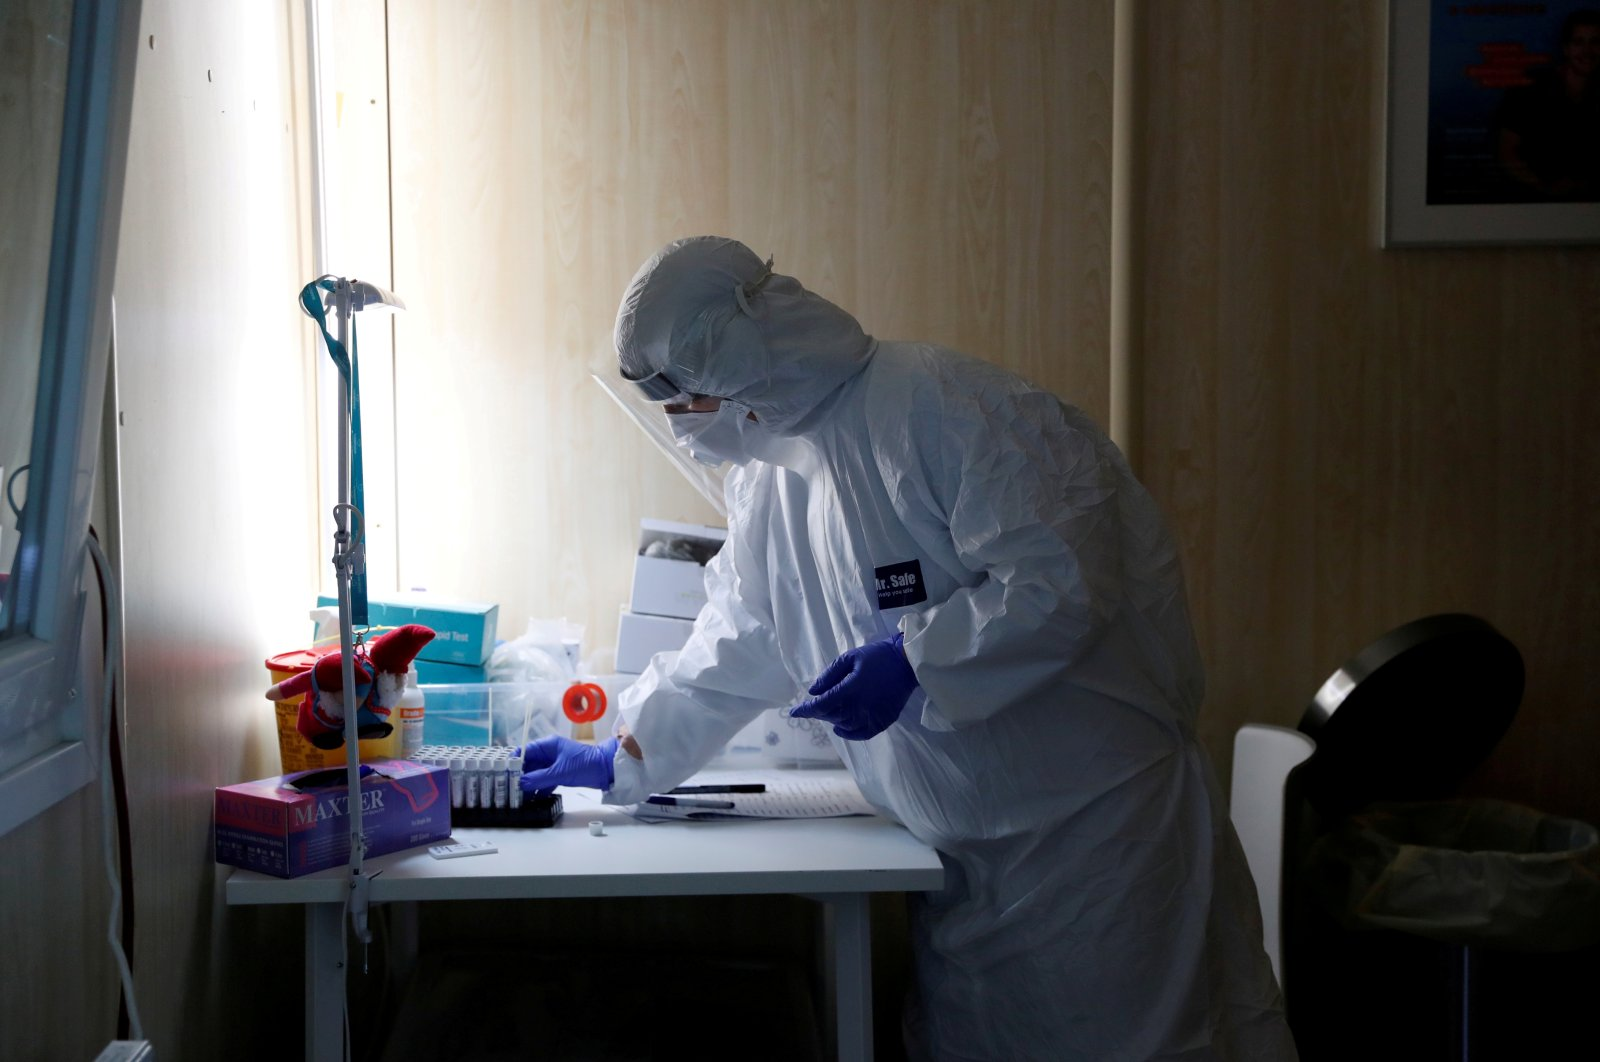 A health care worker works at a COVID-19 testing site, Budapest, Hungary, Oct. 27, 2020. (REUTERS Photo)